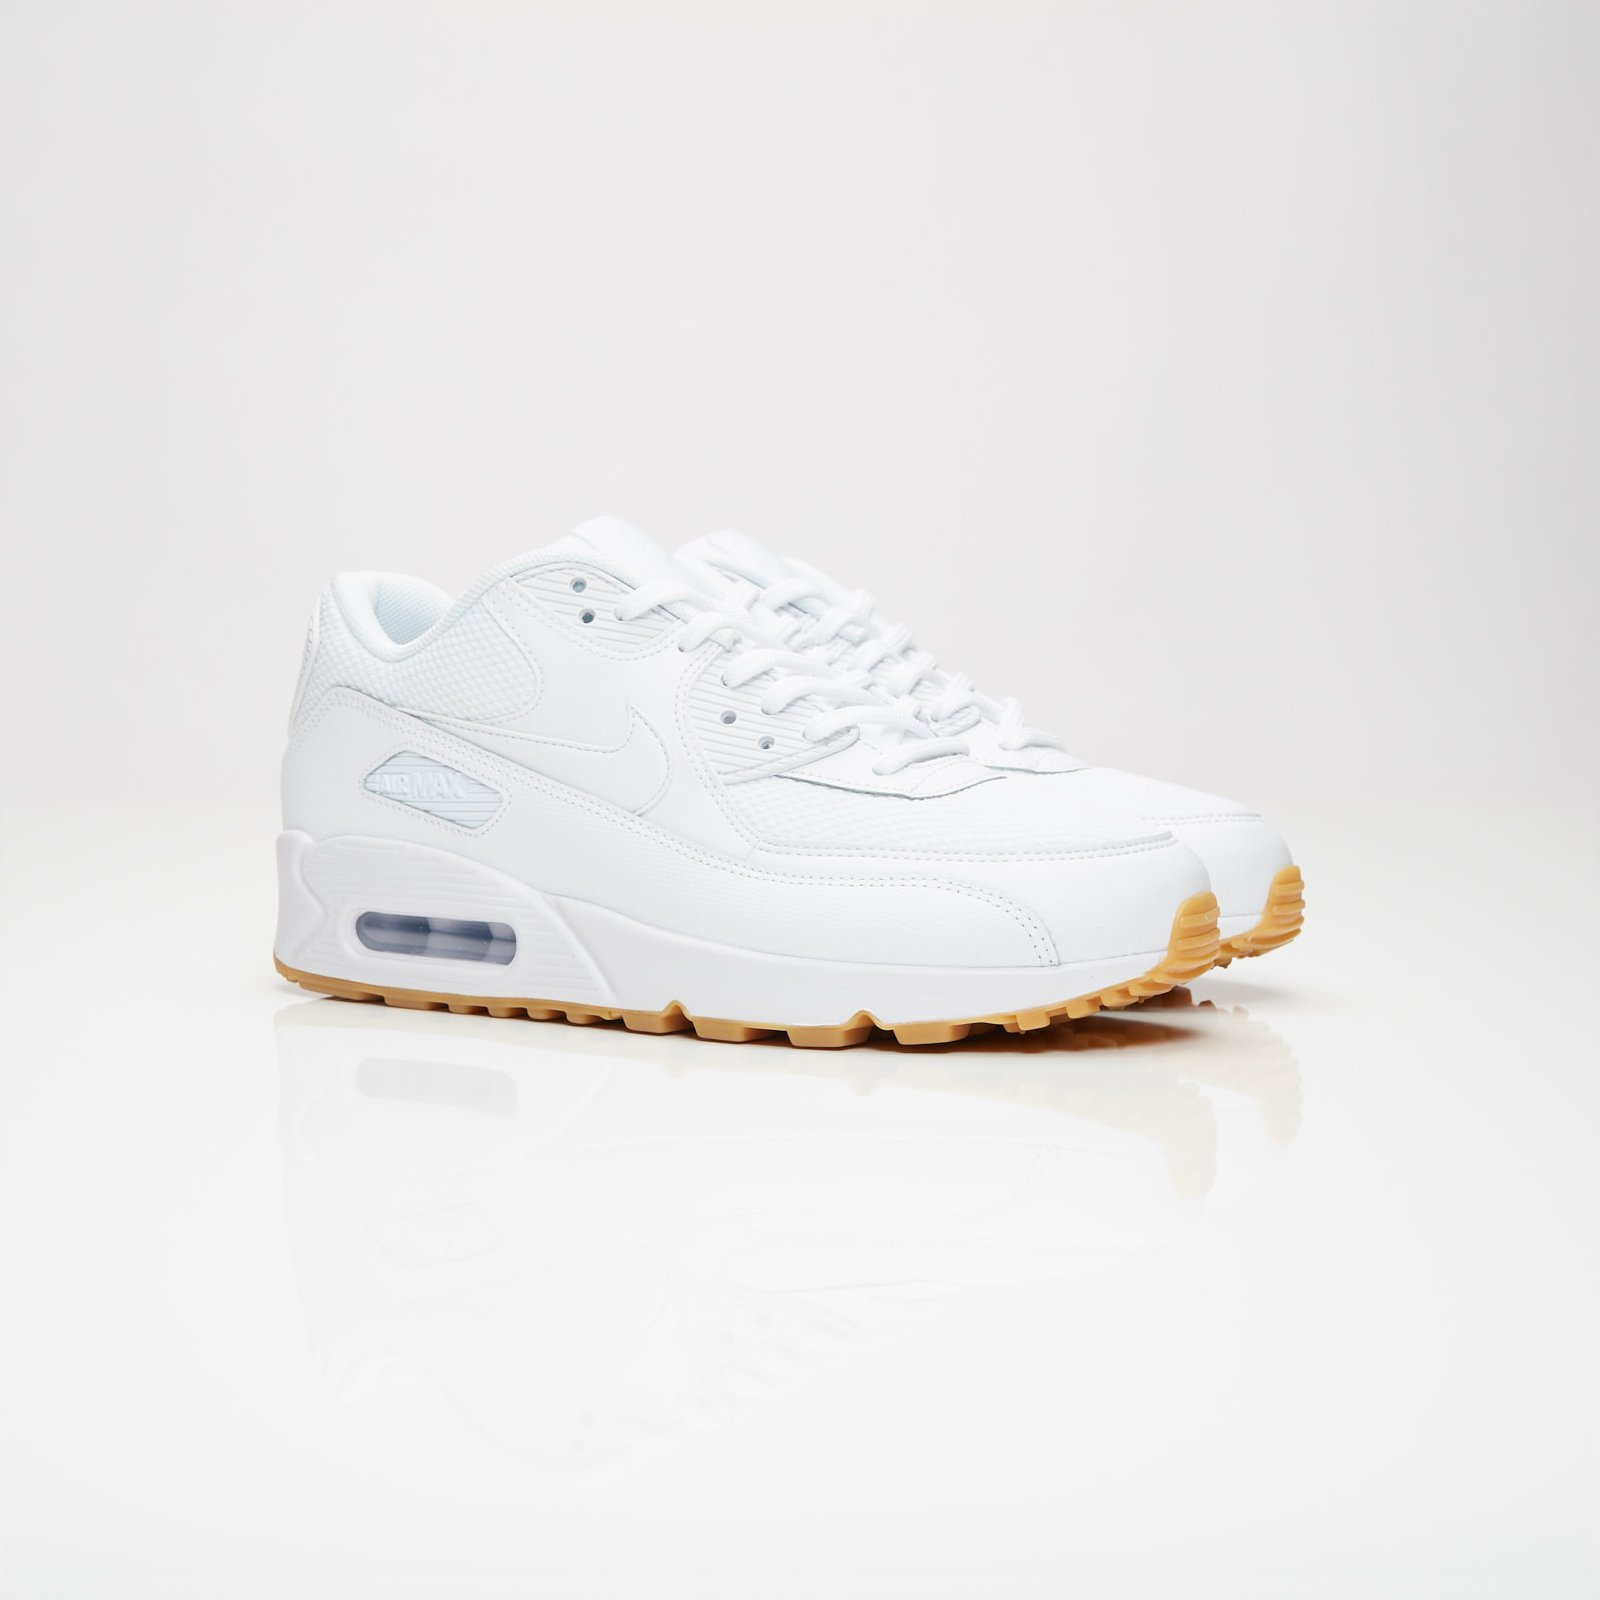 competitive price 36b24 dead6 Nike Wmns Air Max 90 - 325213-135 - Sneakersnstuff ...